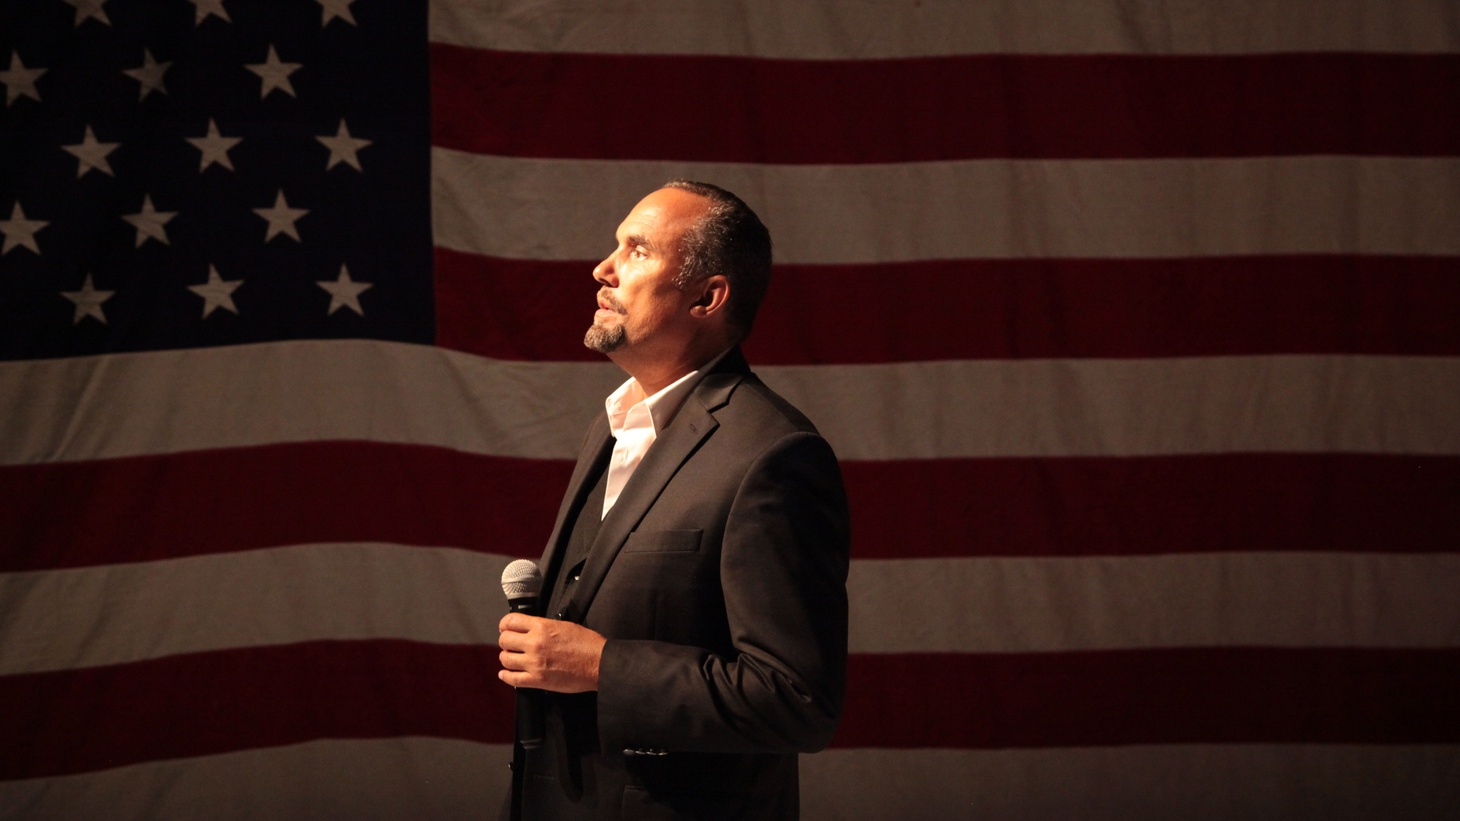 Actor, writer, and director Roger Guenveur Smith discusses his one man show, Frederick Douglass Now at LA's Bootleg Theater.